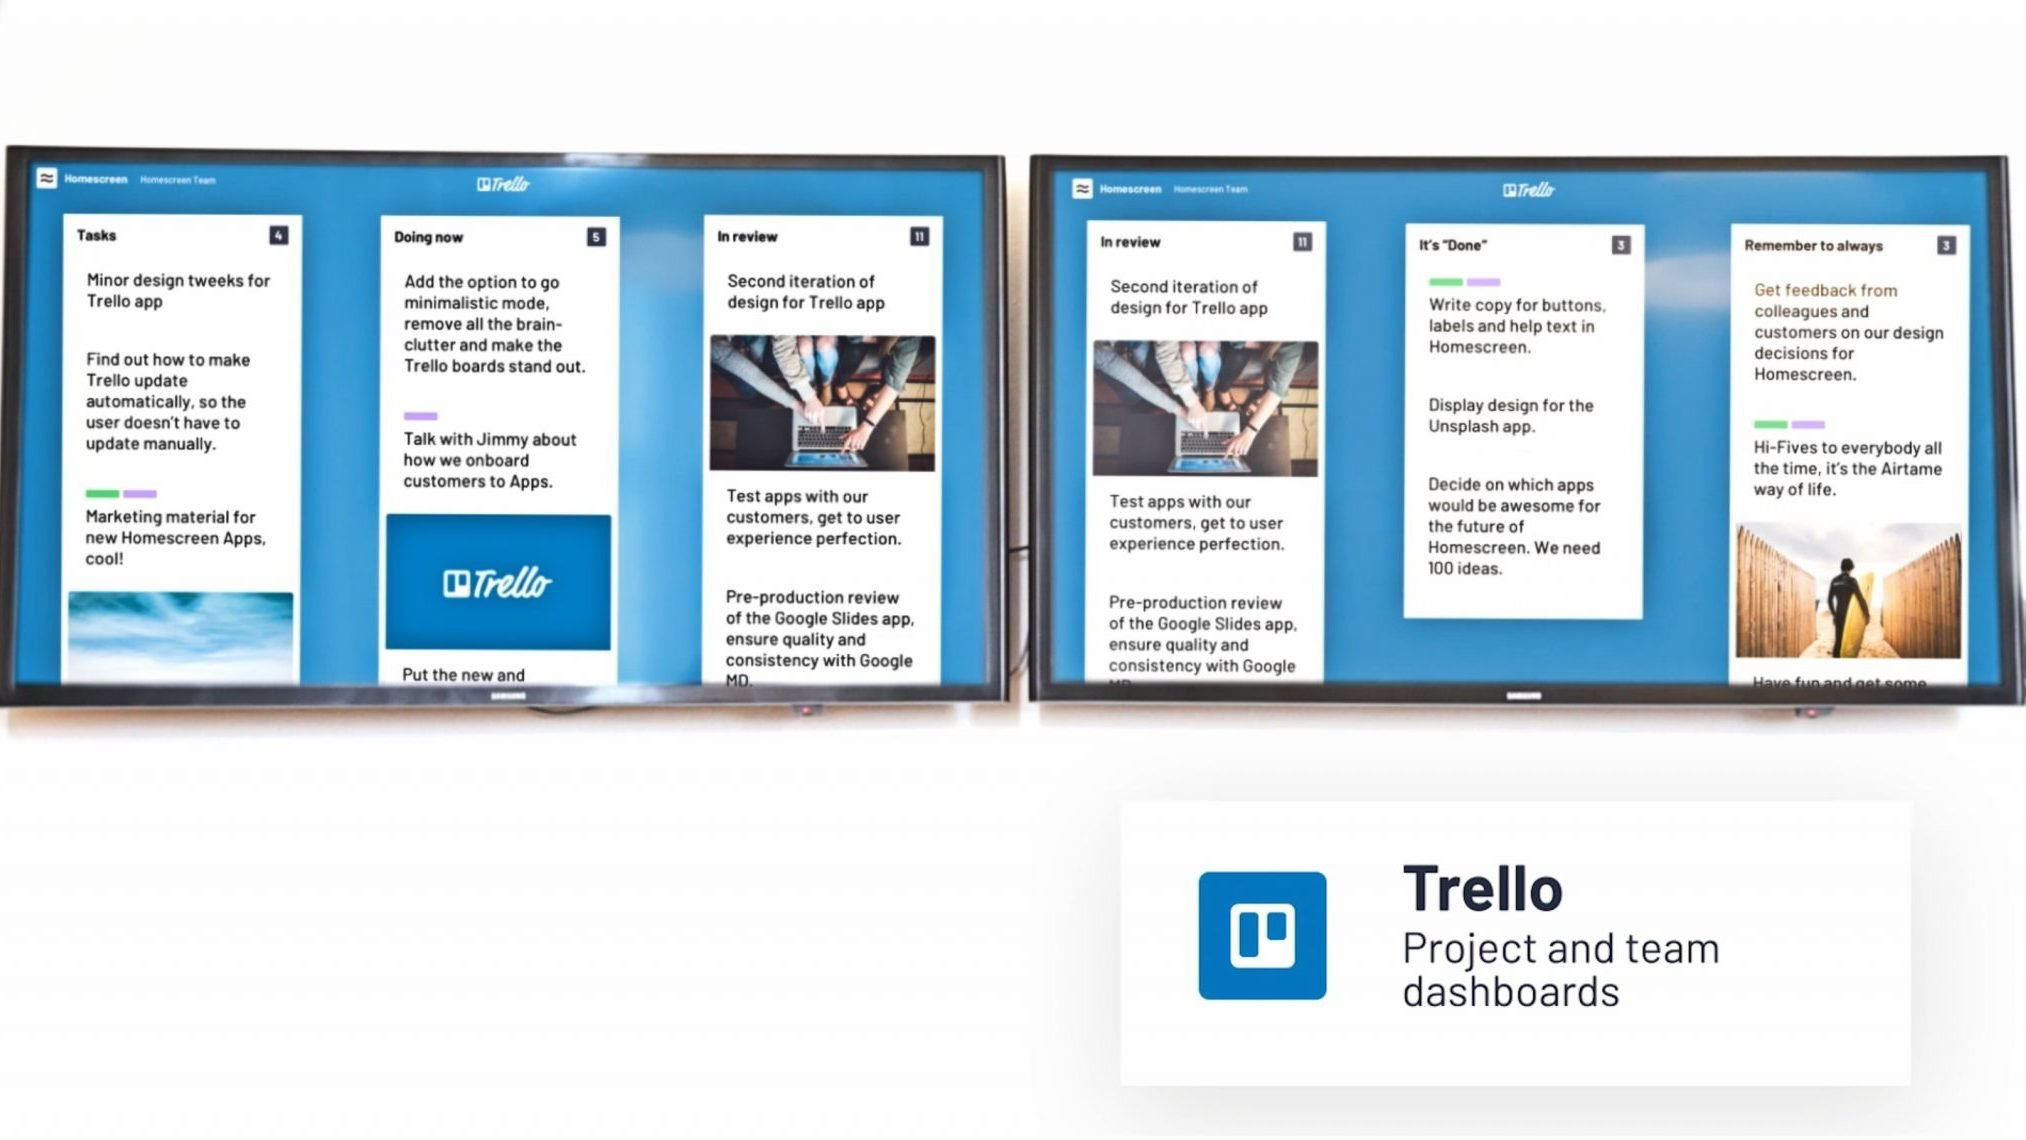 Trello - one of Airtame's homescreen apps - presented on two TV screens